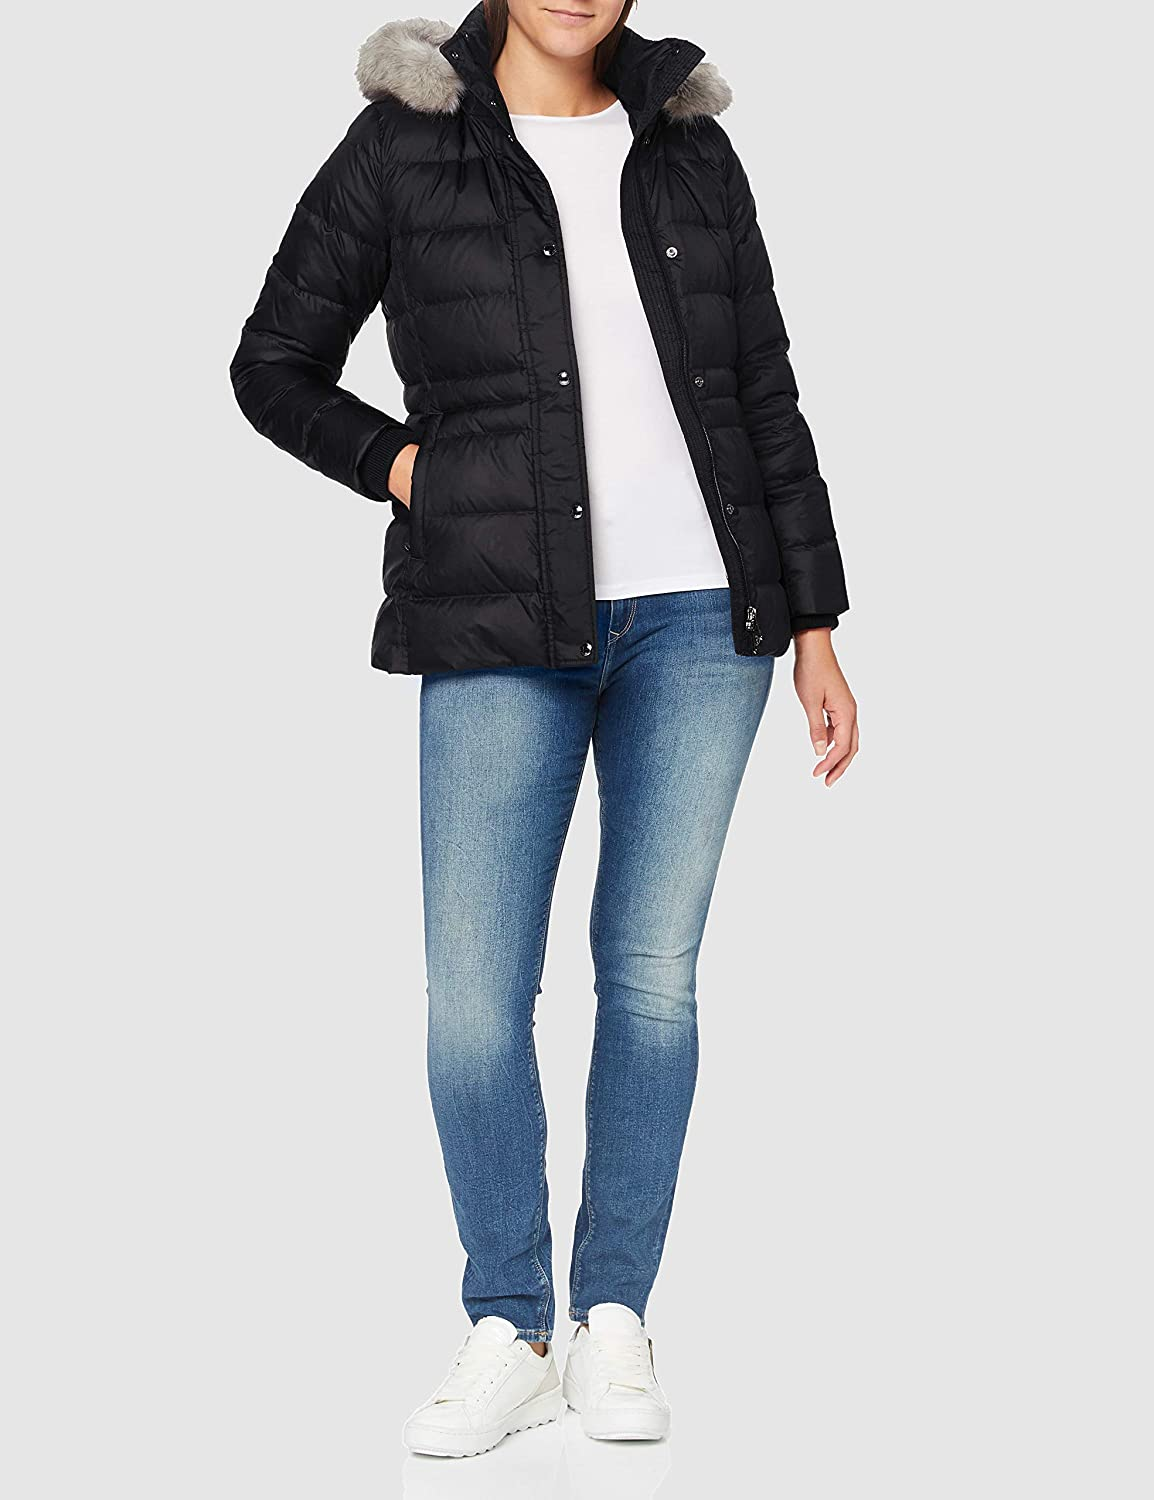 Tommy Hilfiger Womens Th Ess Tyra Down Jkt With Fur Jacket